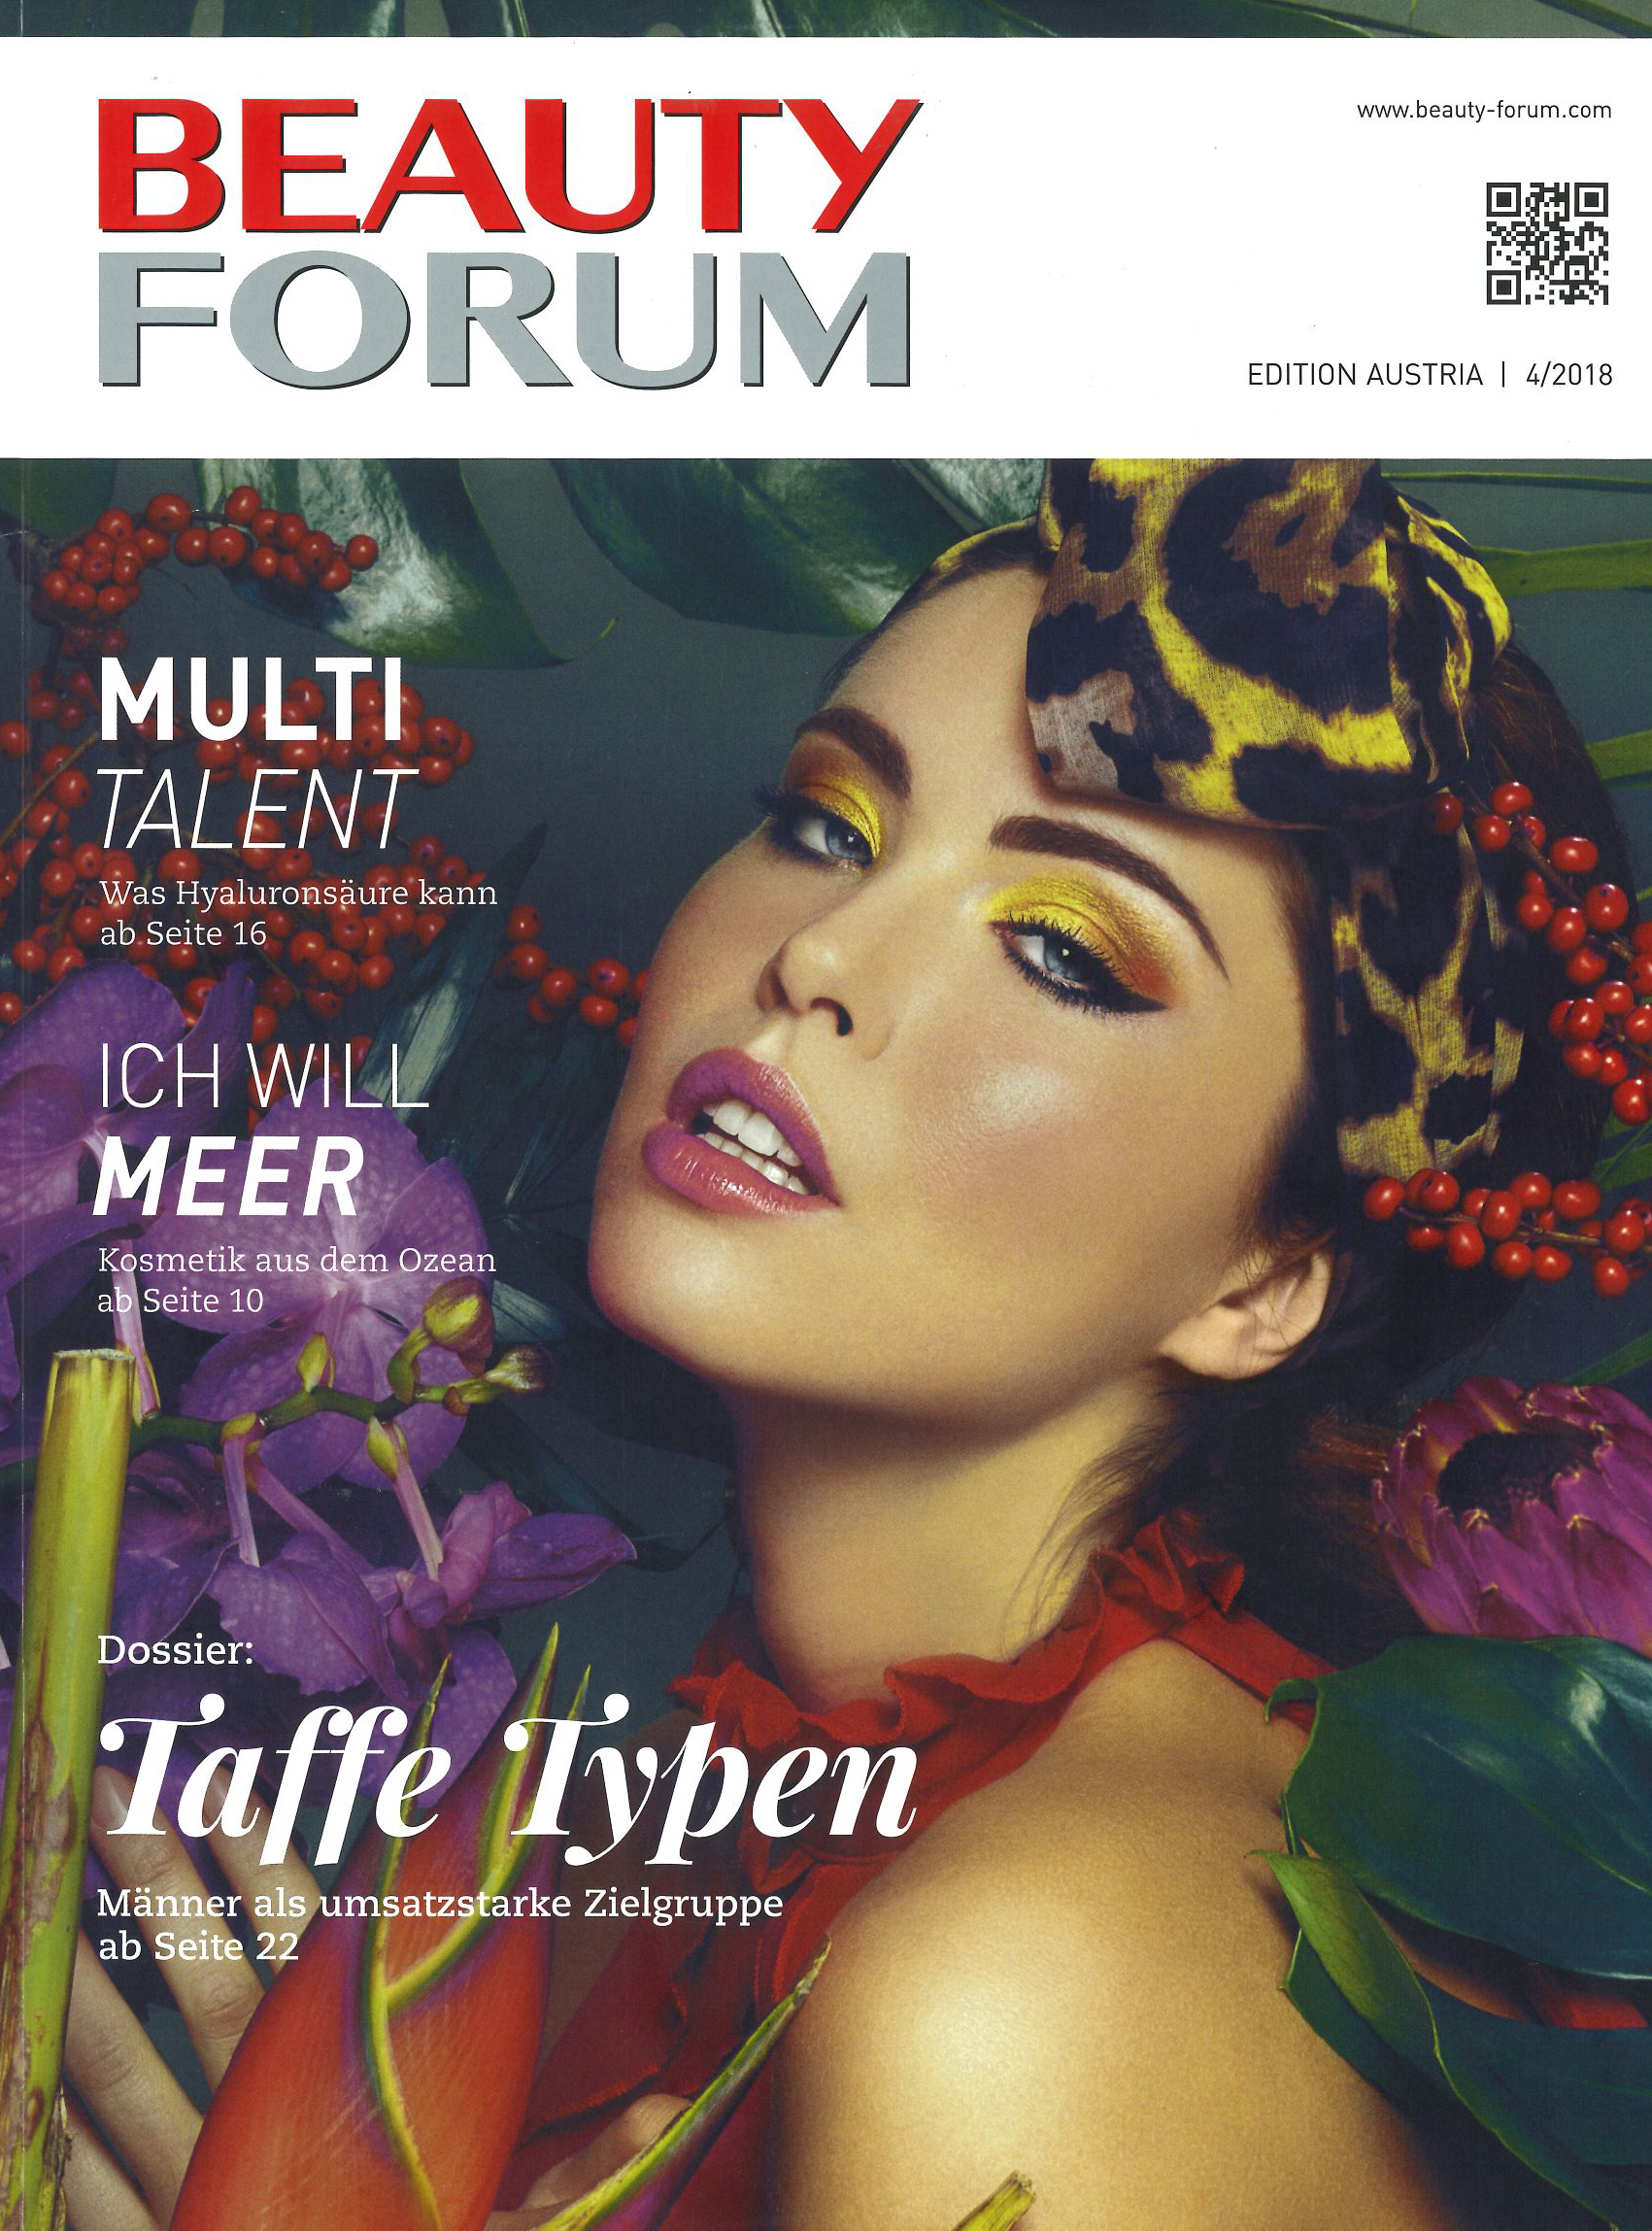 Schutz vor Blue Light, Beauty-Forum im August 2018